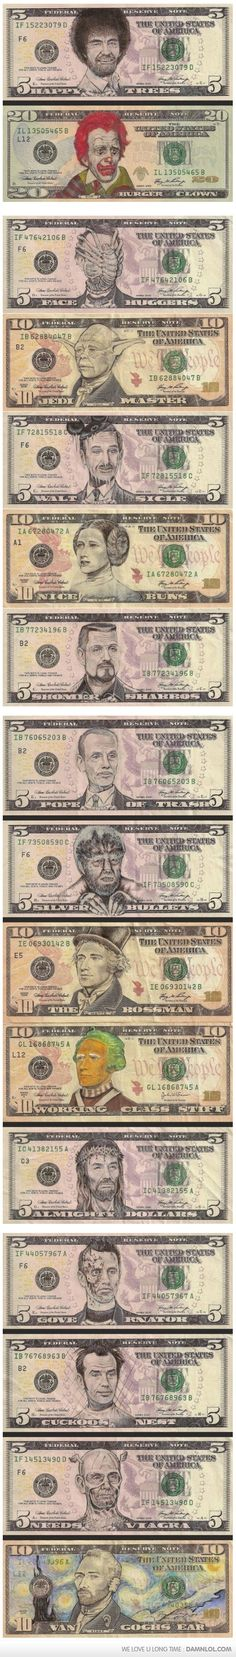 Awesome Currency Art